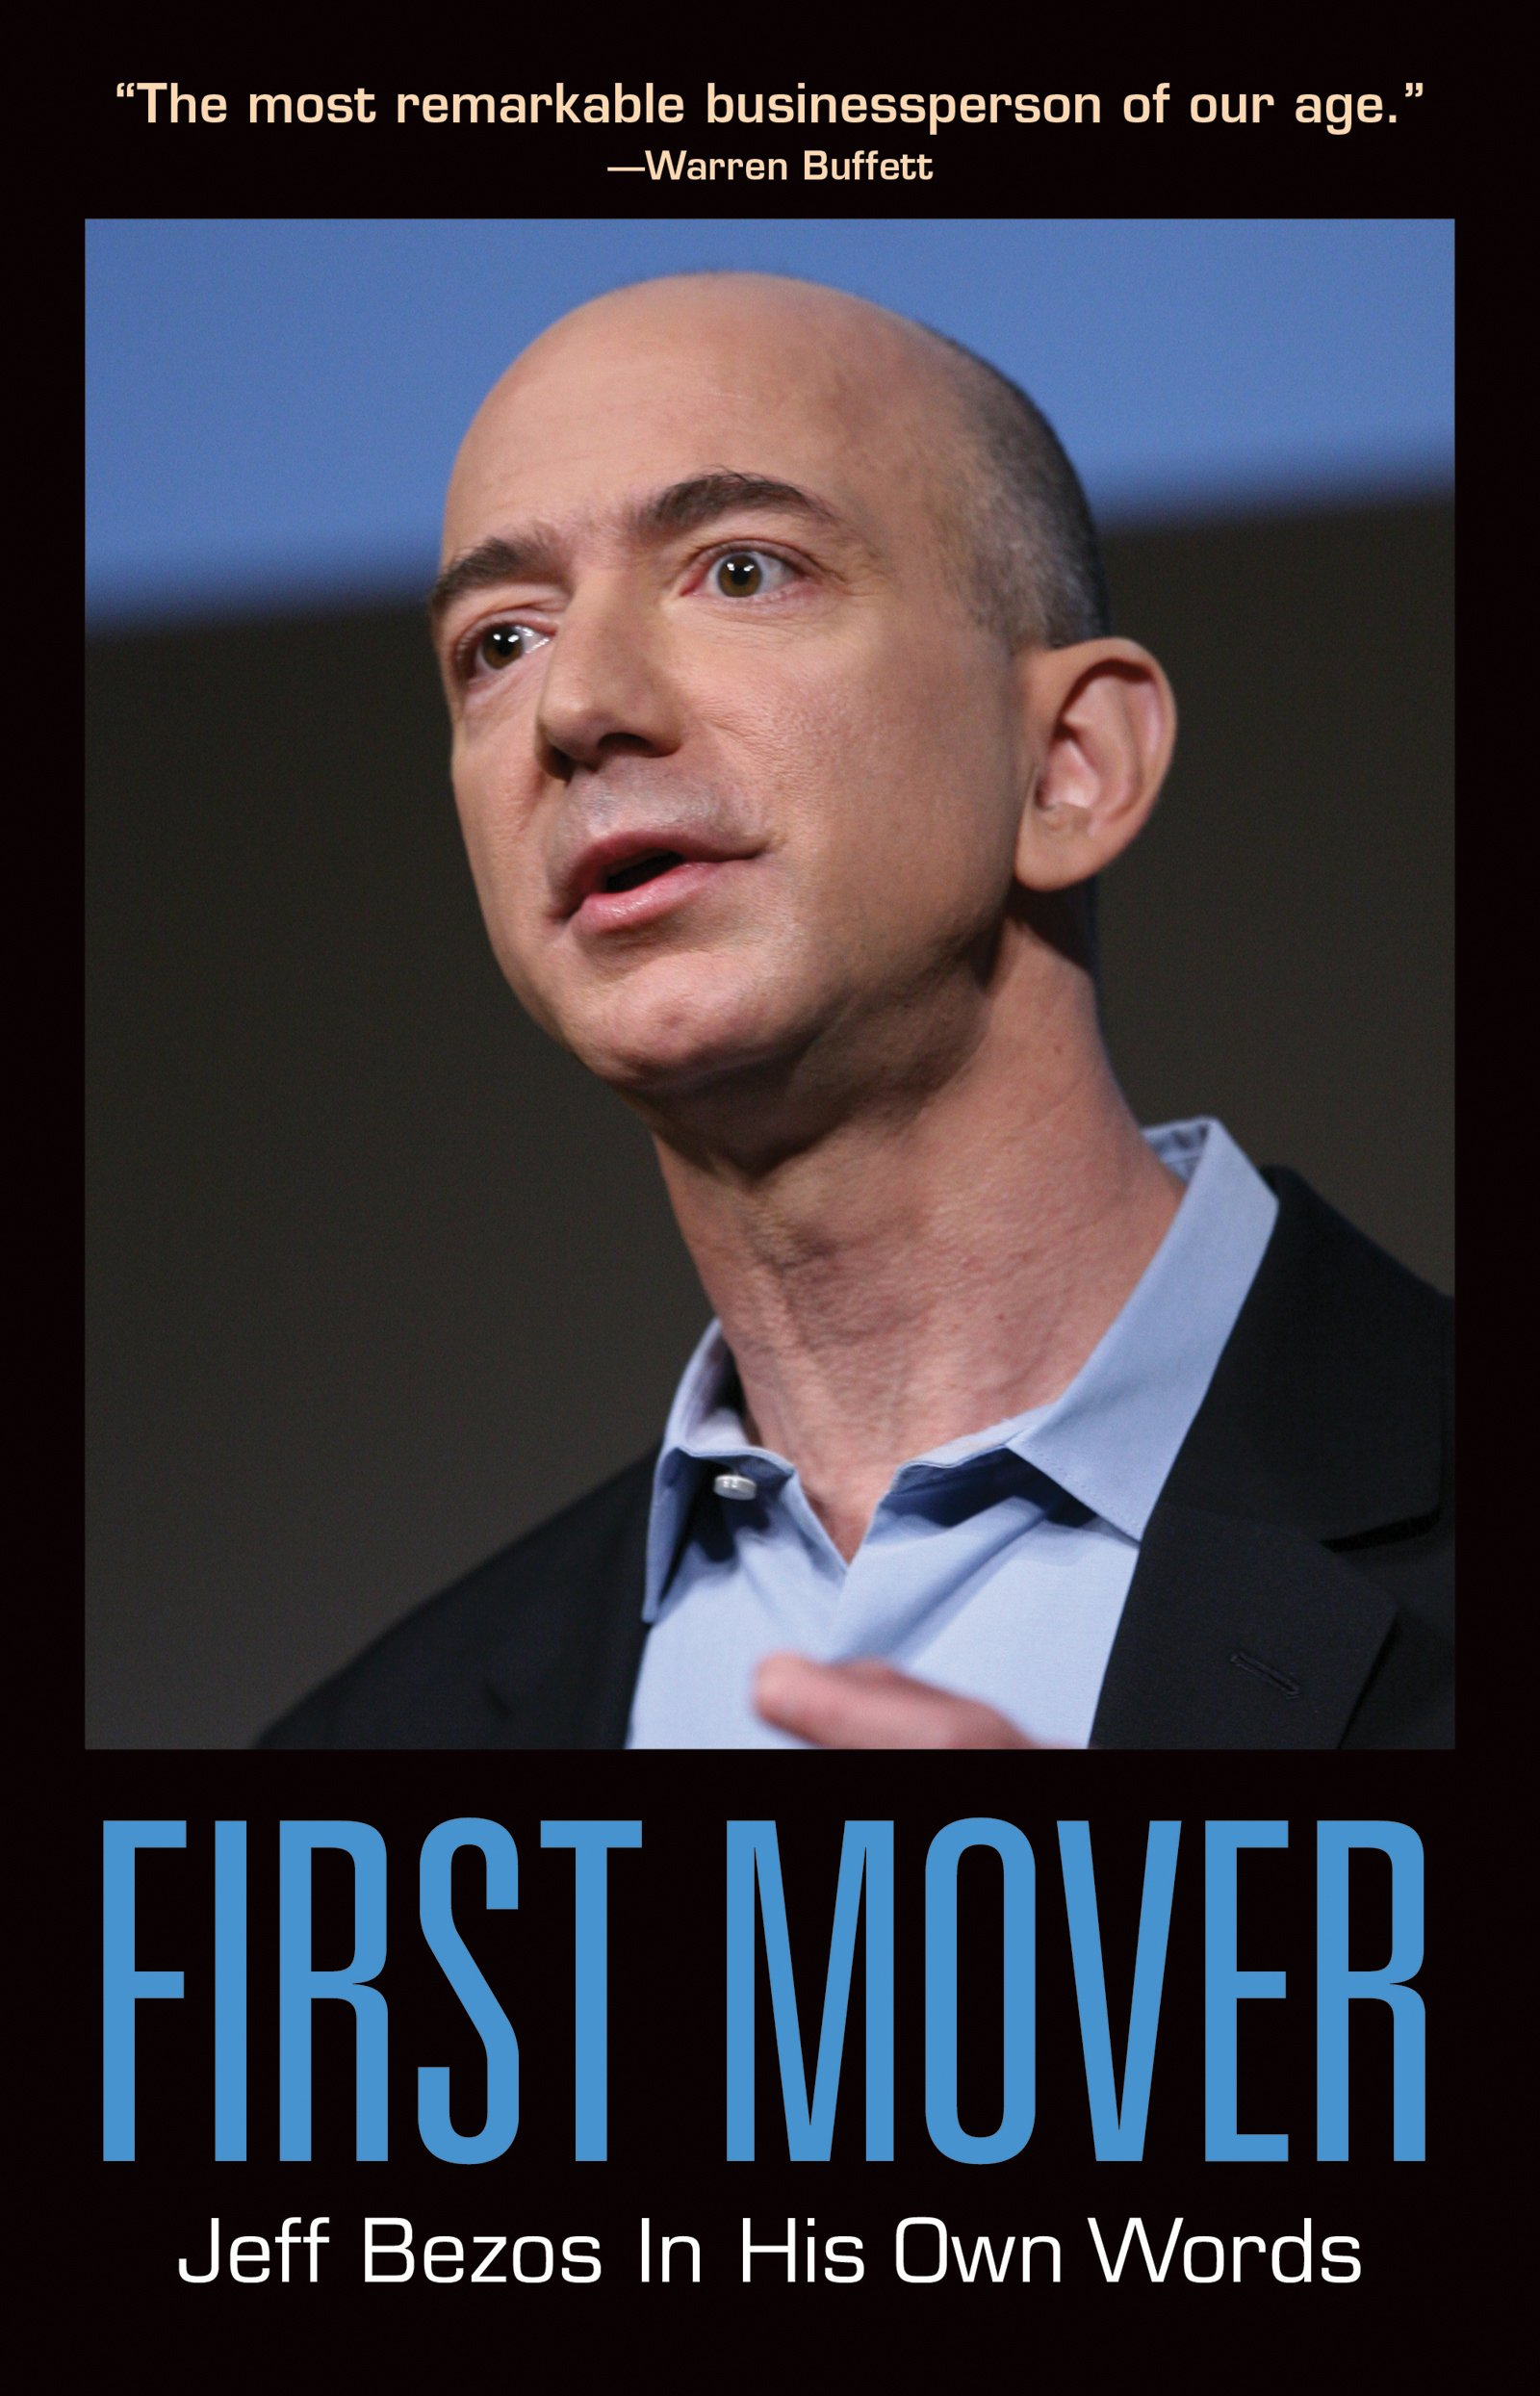 First Mover Jeff Bezos In His Own Words In Their Own Words Series